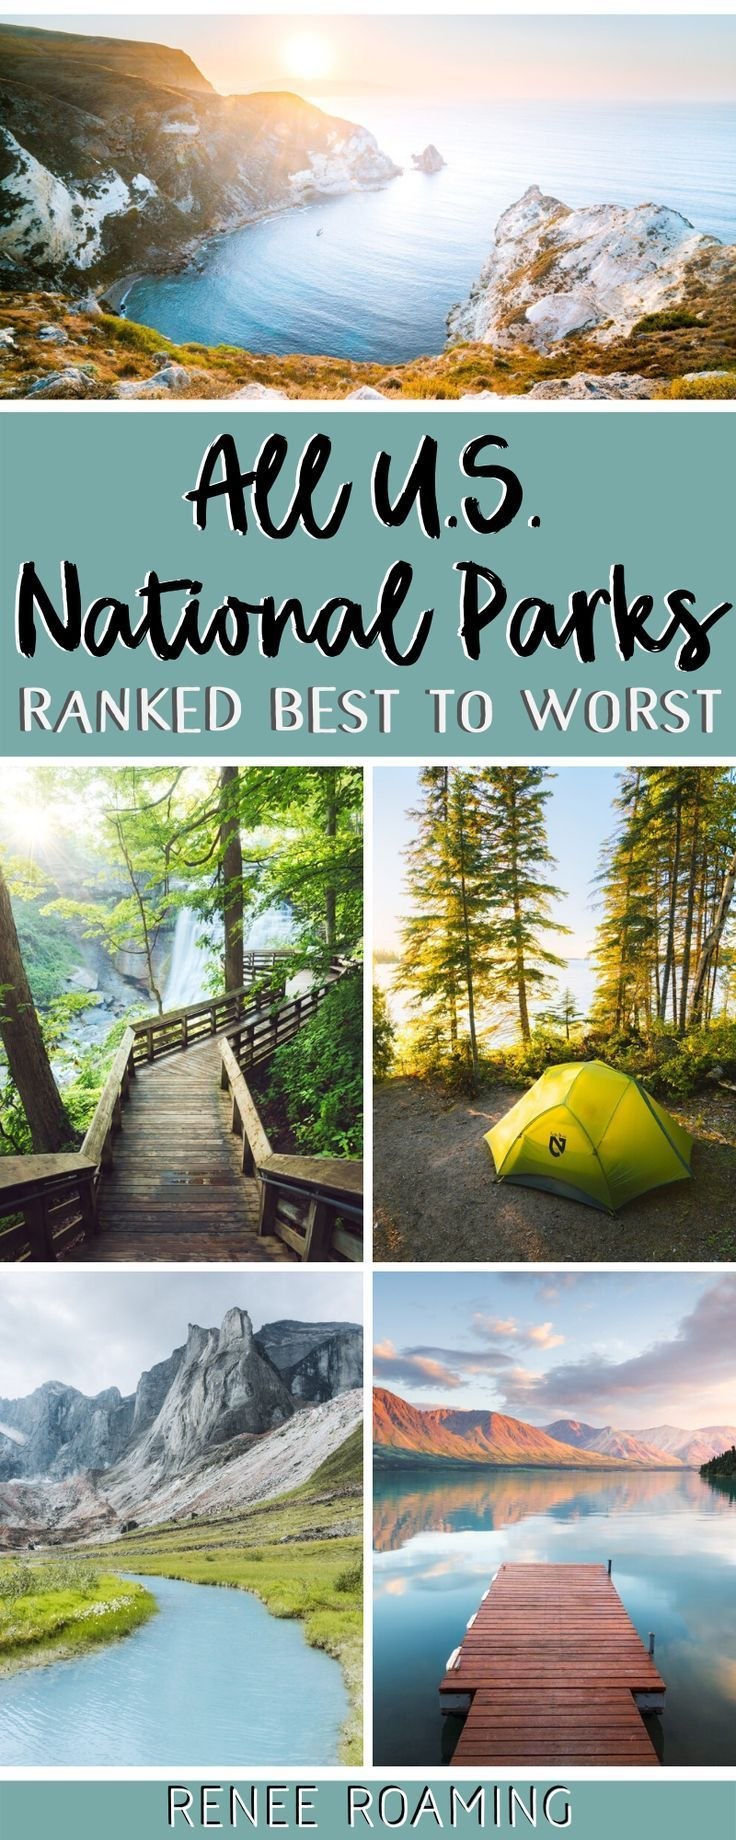 US National Parks Ranked Best To Worst - First-Hand Experience!